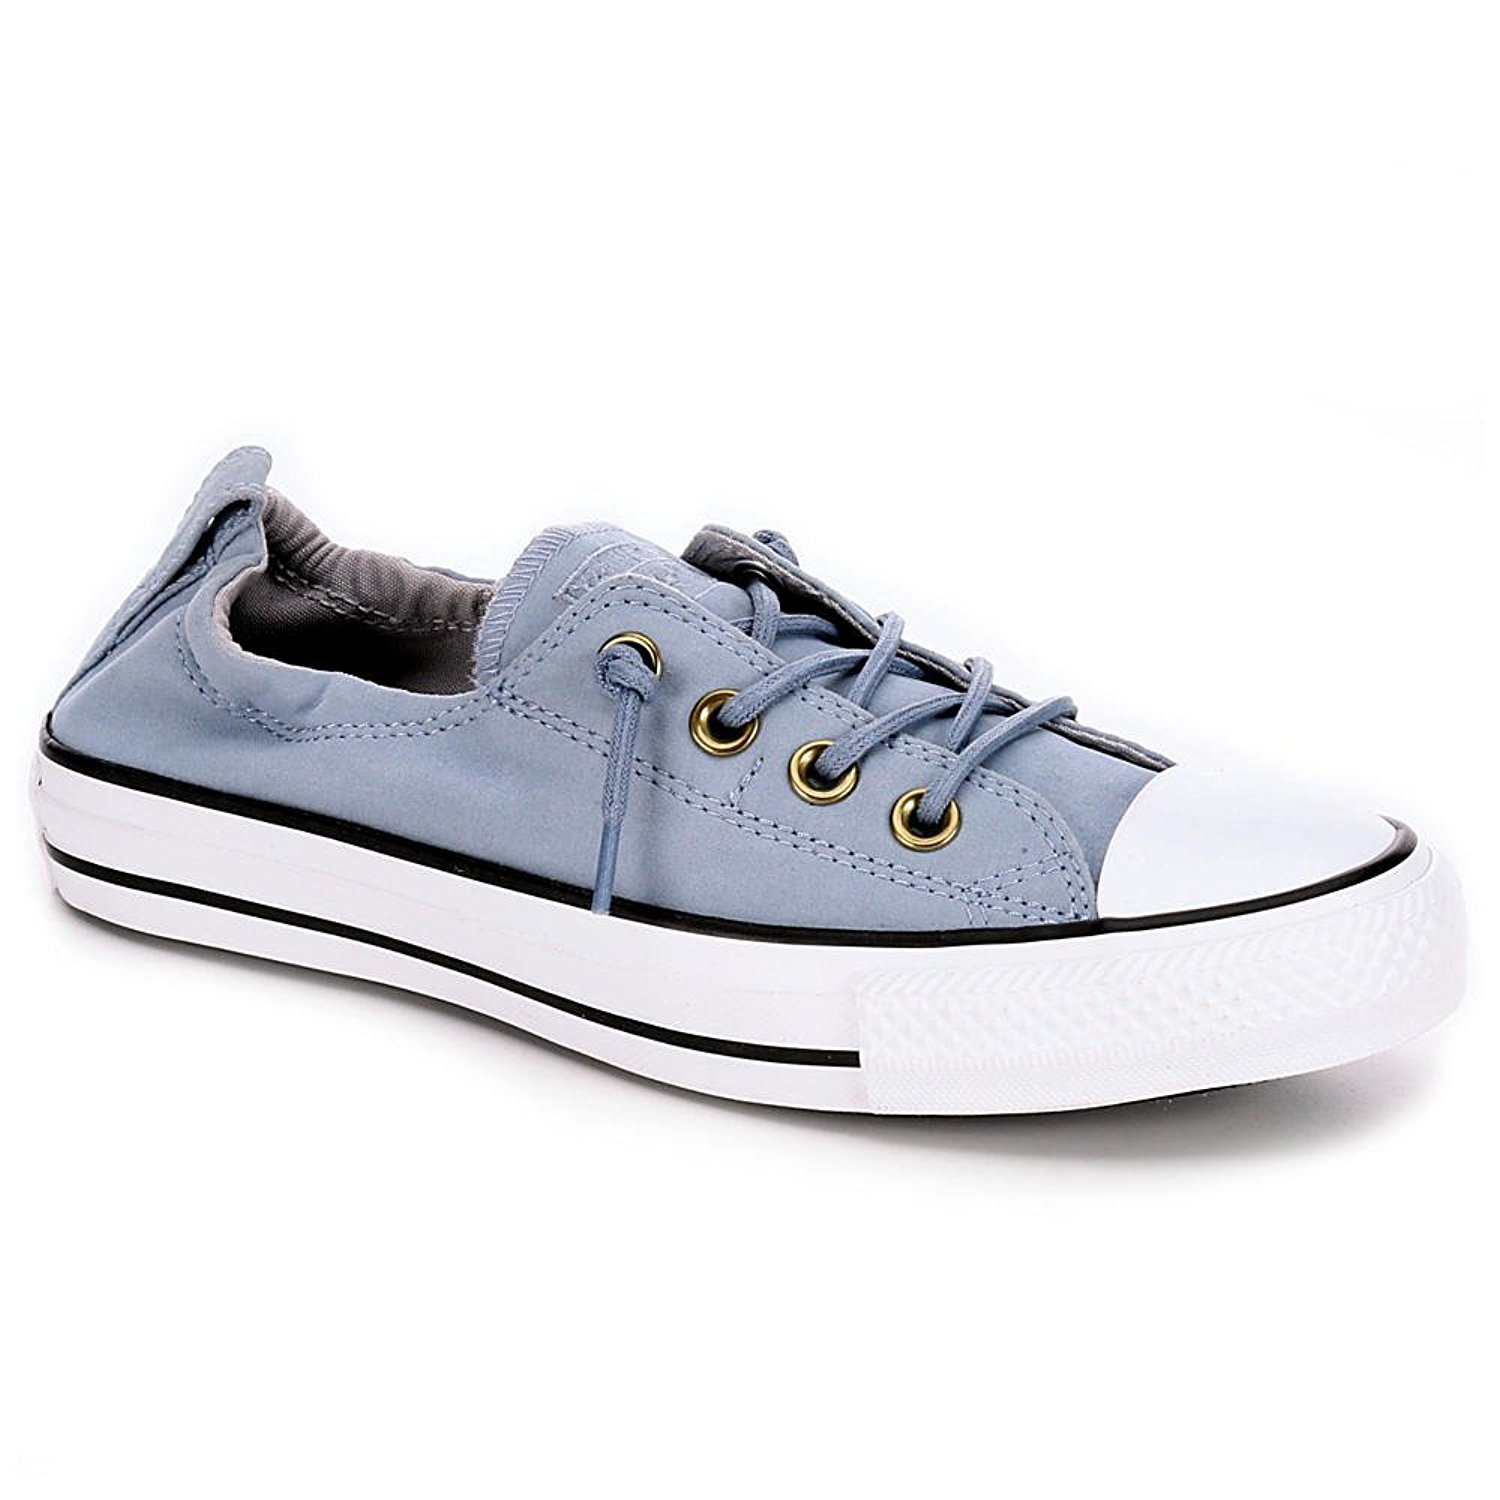 CONVERSE Designer Chucks Schuhe - ALL STAR -  7 B(M) US|Blue Skate/Ash Grey